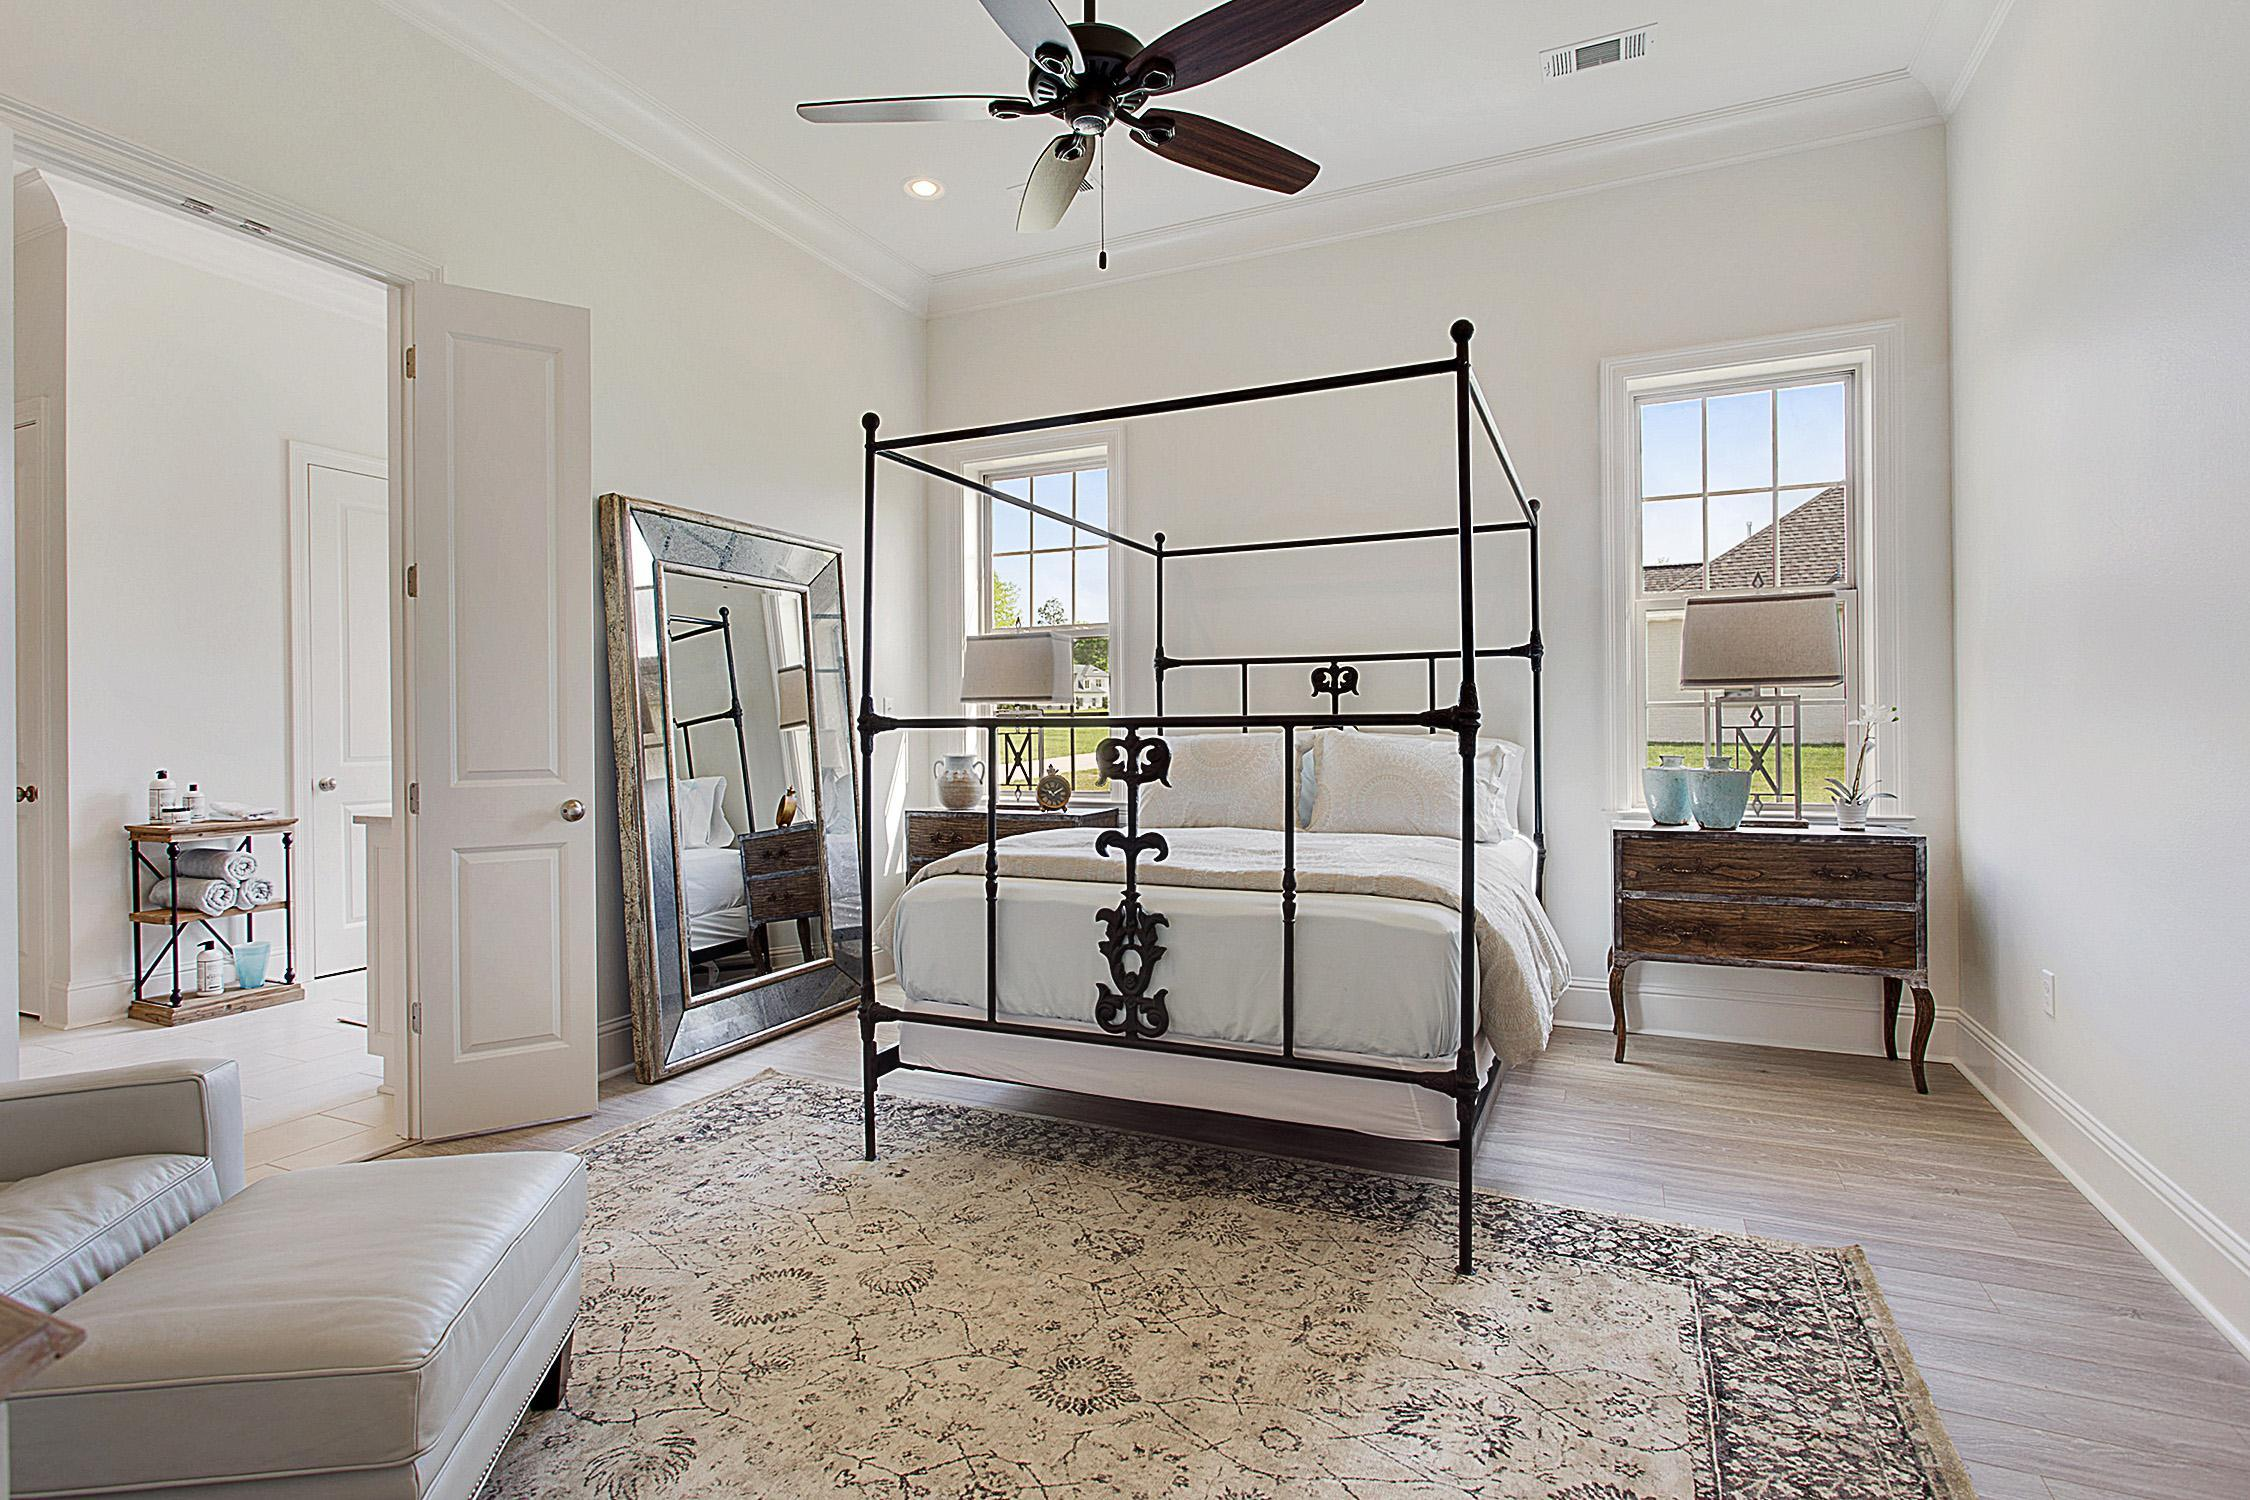 Bedroom featured in the Fountainbleau (4 Bed) By Highland Homes in New Orleans, LA